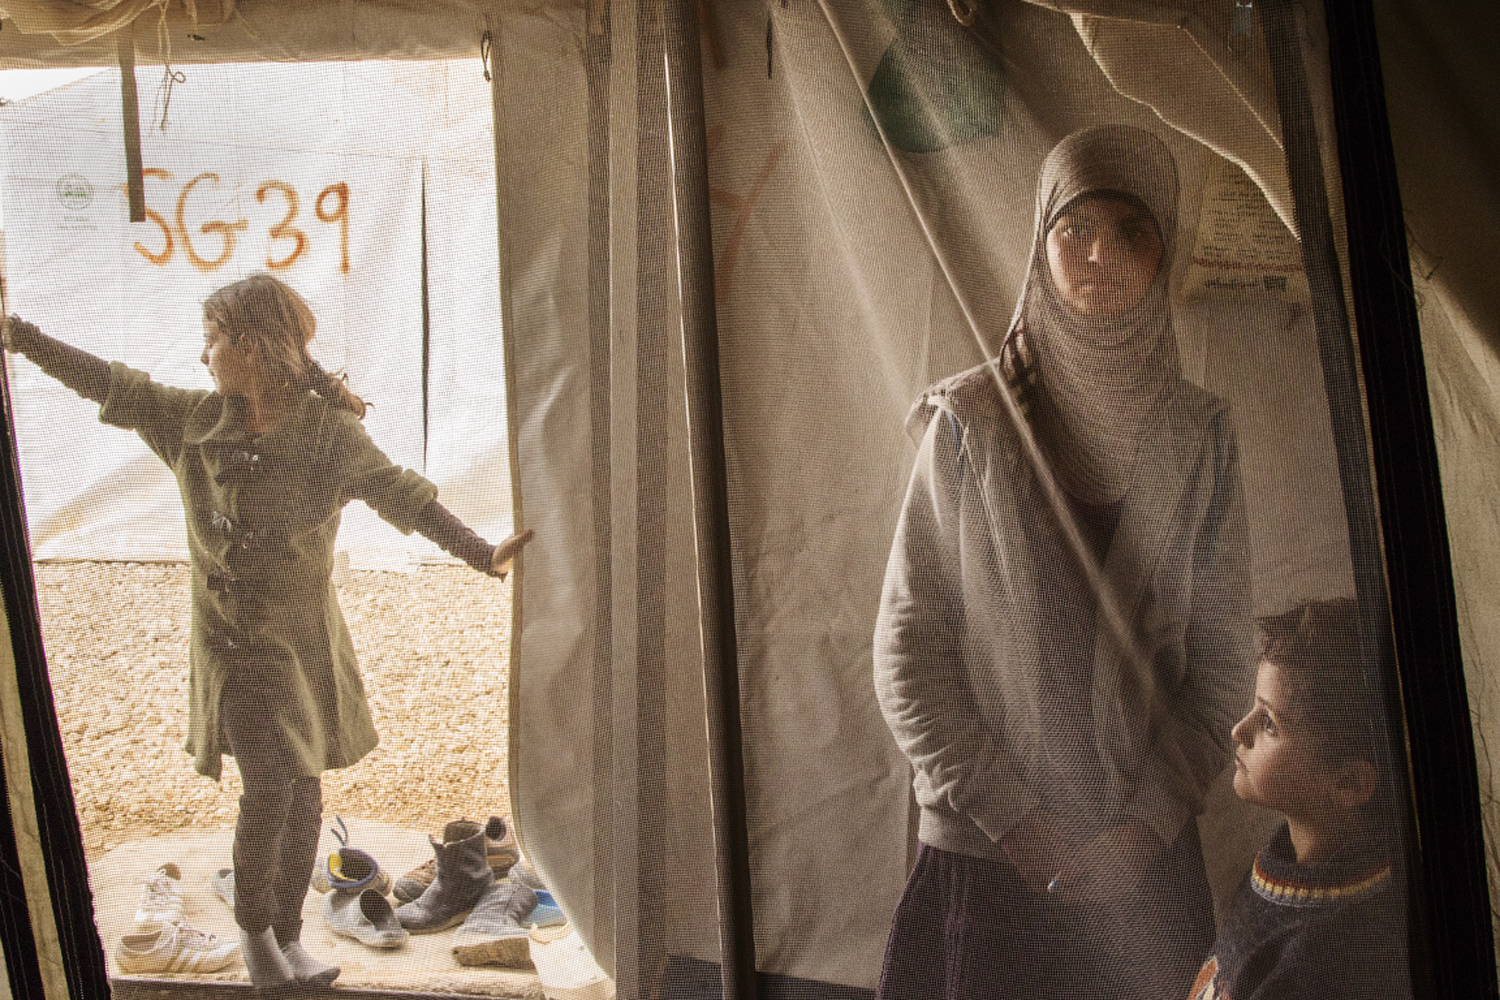 Nov. 18, 2013. Reem, a Syrian refugee suffering from mental health issues spends time with her siblings in her family tent at the Za'atari refugee camp for Syrians, near Mafraq, Jordan.